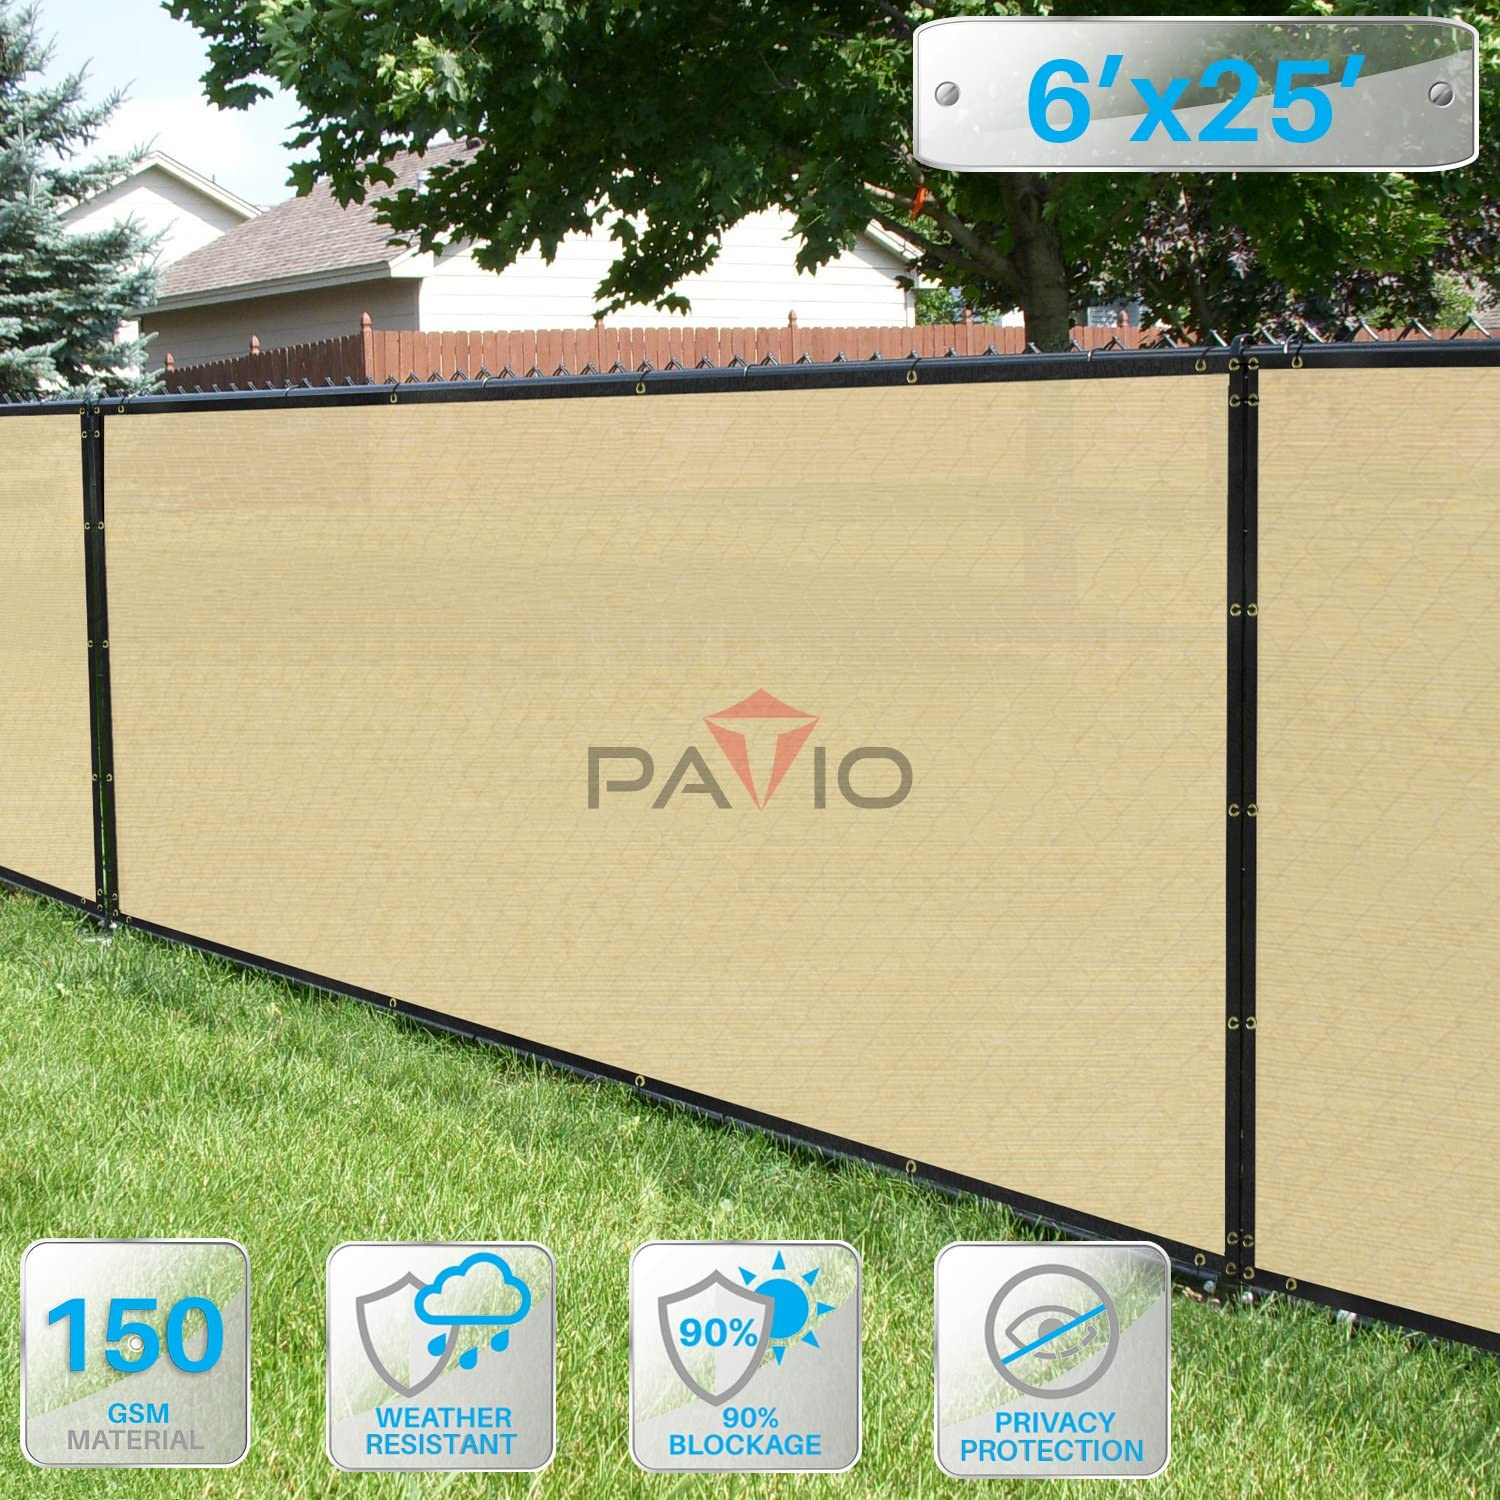 Patio Paradise 6 x 25 Privacy Screen Fence in Beige, Commercial Grand Mesh Shade Fabric with Brass Gromment Outdoor Windscren – Custom